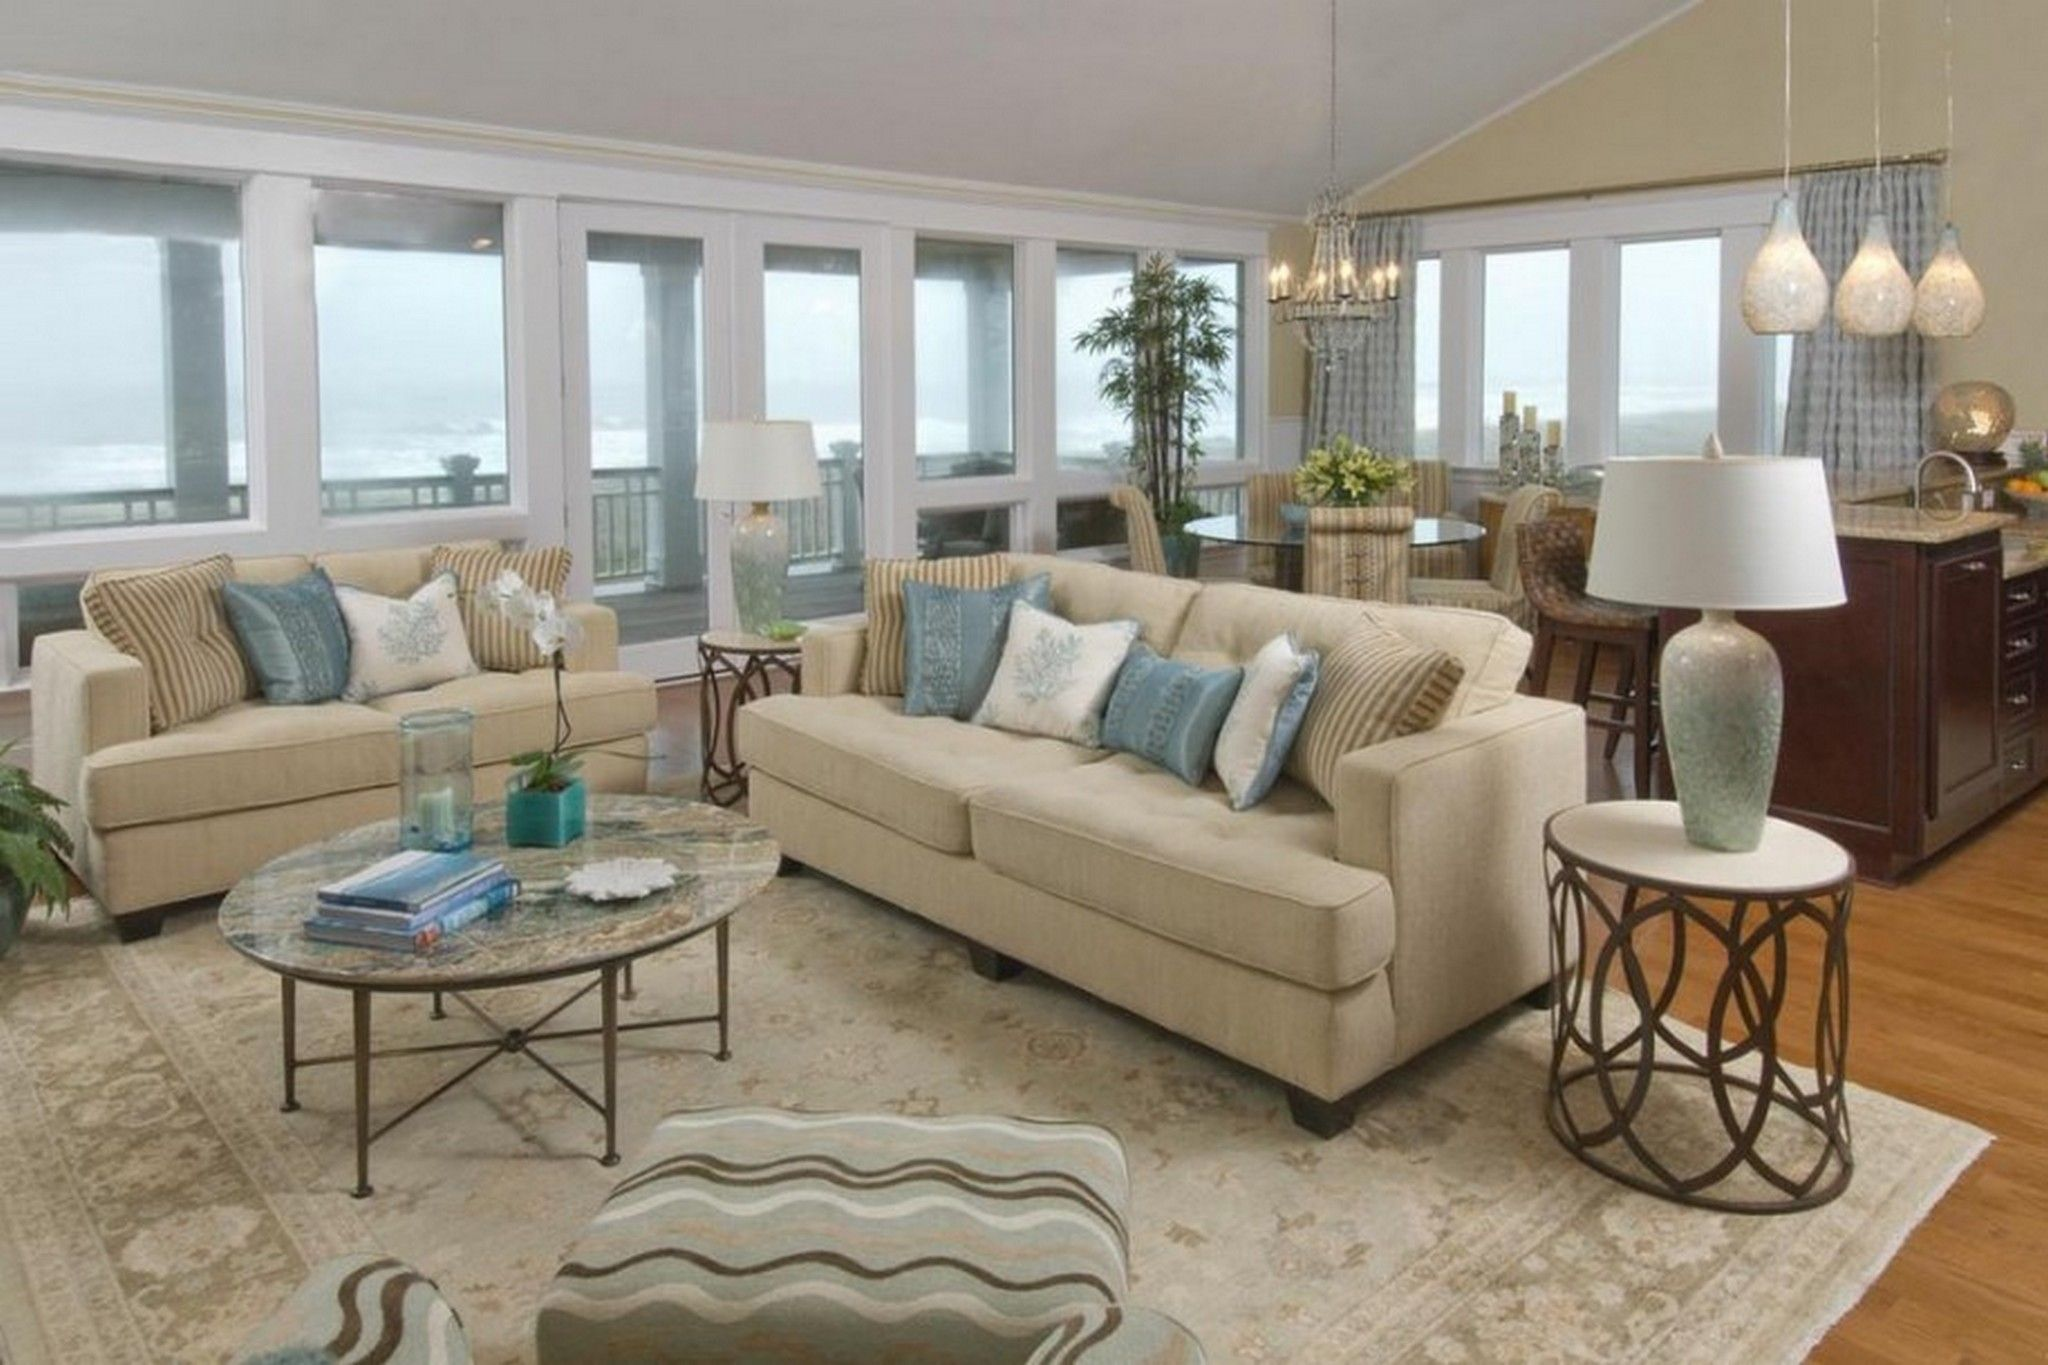 Beach Decor For The Living Room  Beach House Interiors Enchanting Living Room Beach Decorating Ideas Inspiration